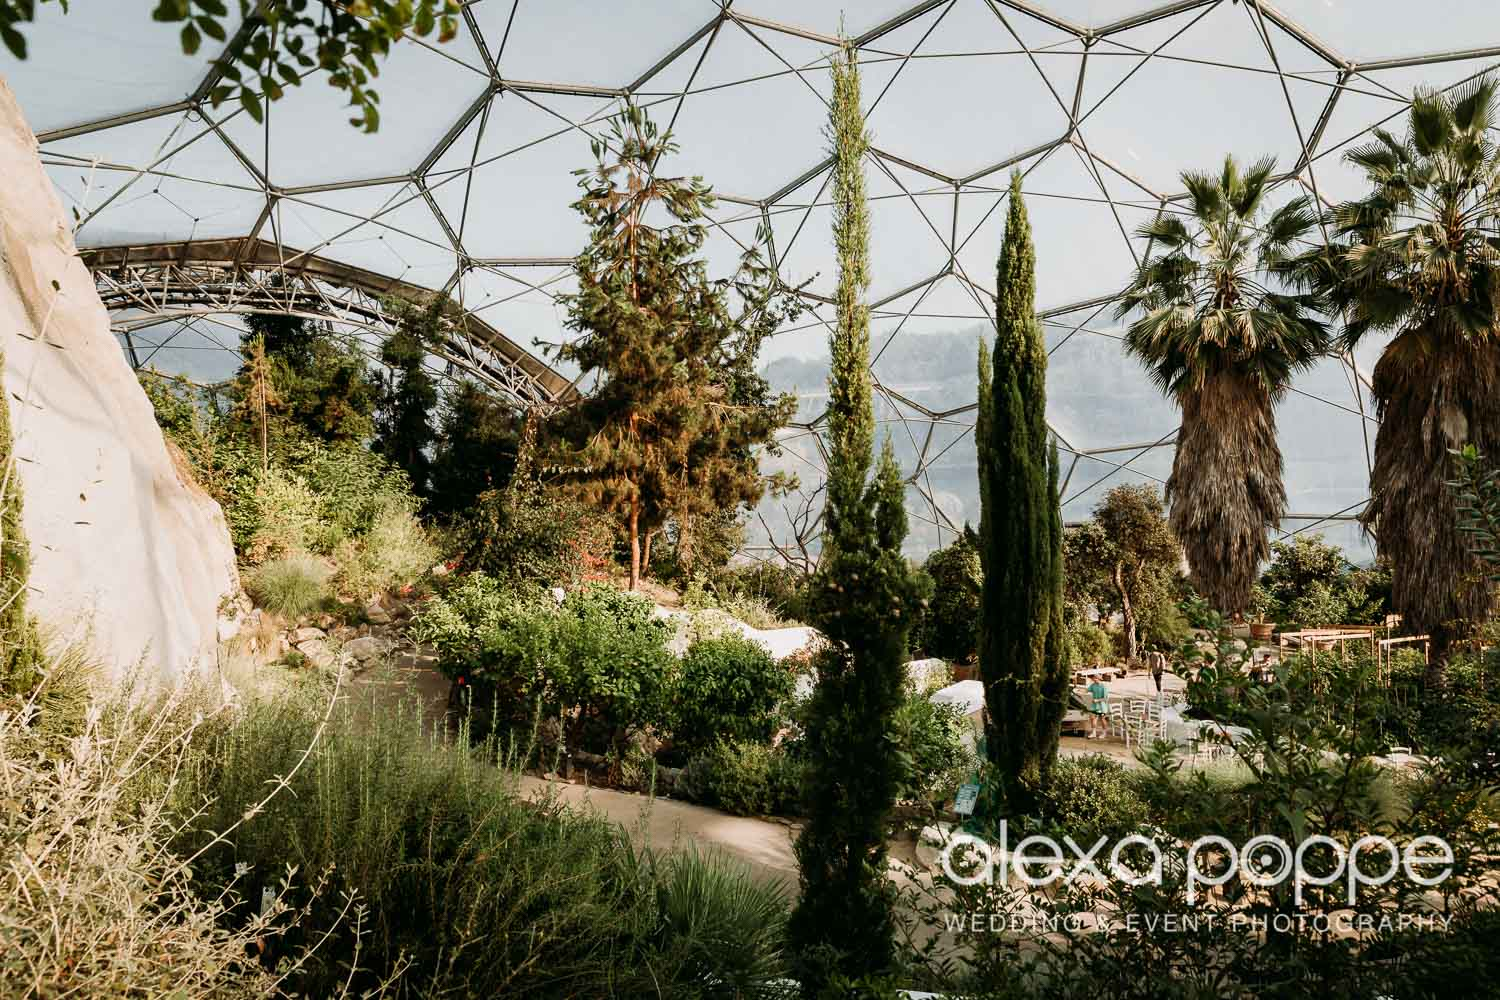 VA_wedding_edenproject_carnglaze_76.jpg